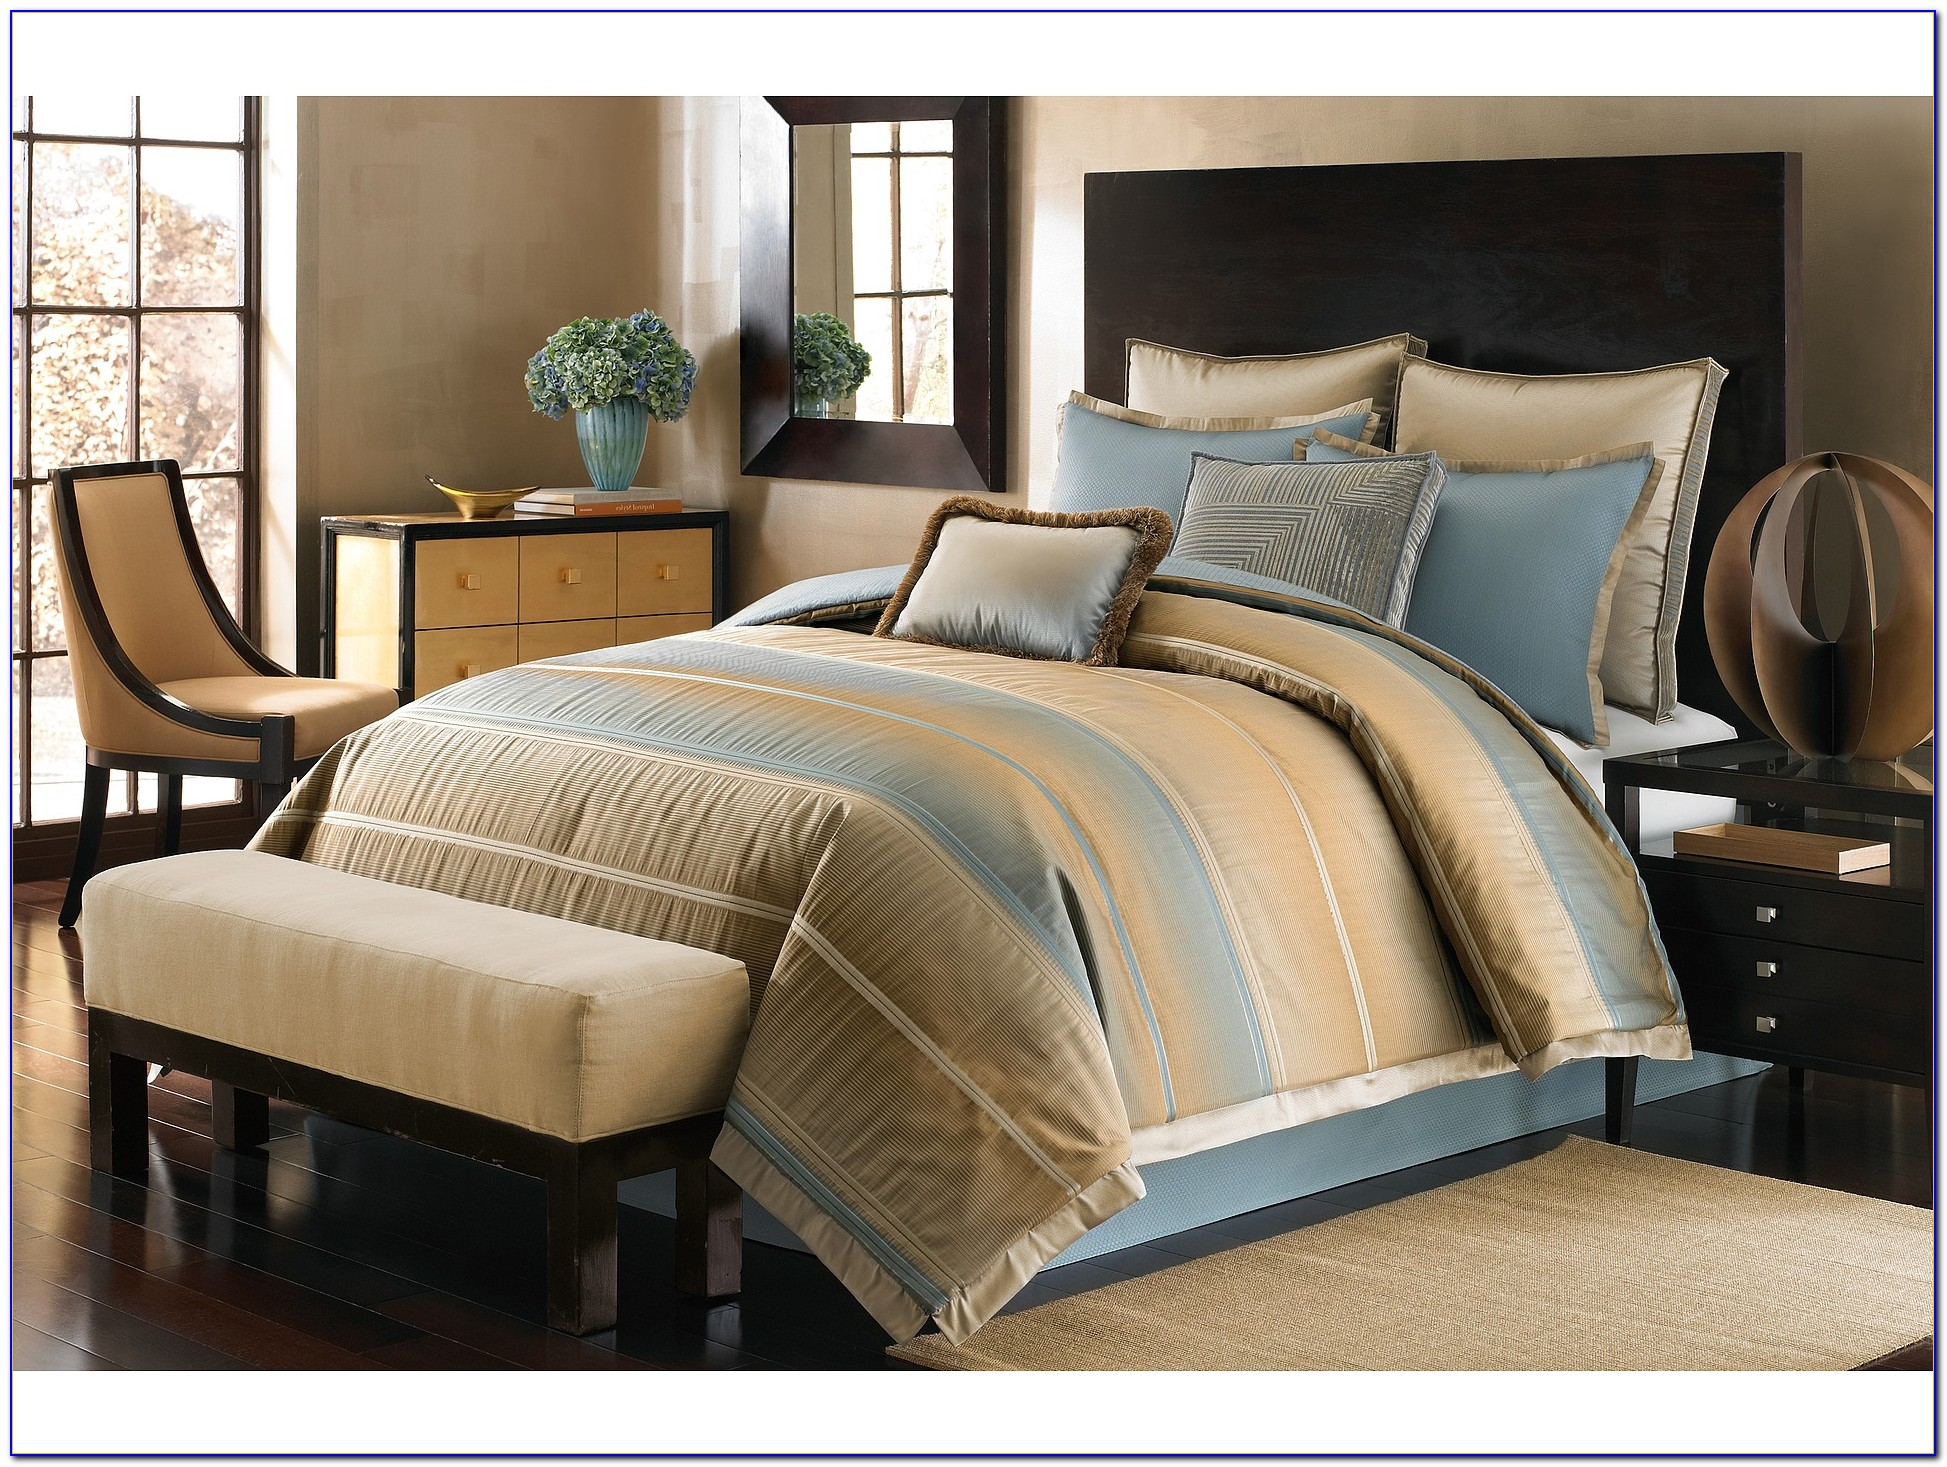 Macy's Vince Camuto Bedding